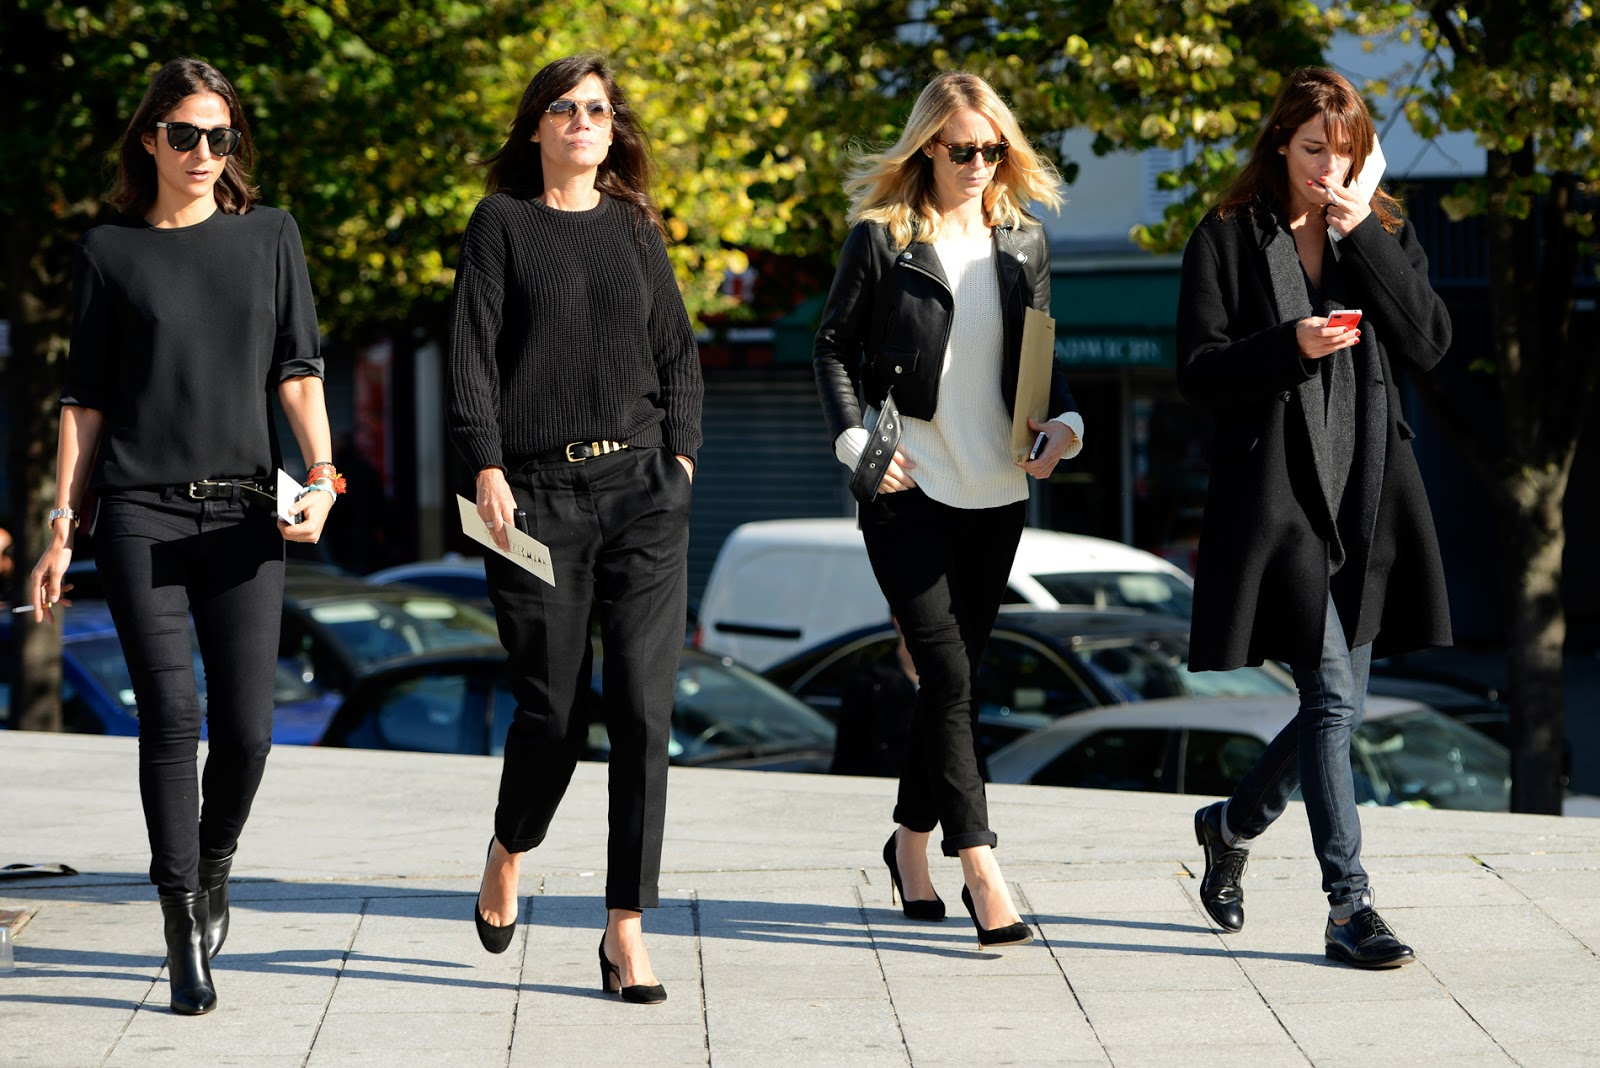 082914_best_tommy_ton_street_style_french_001.jpg